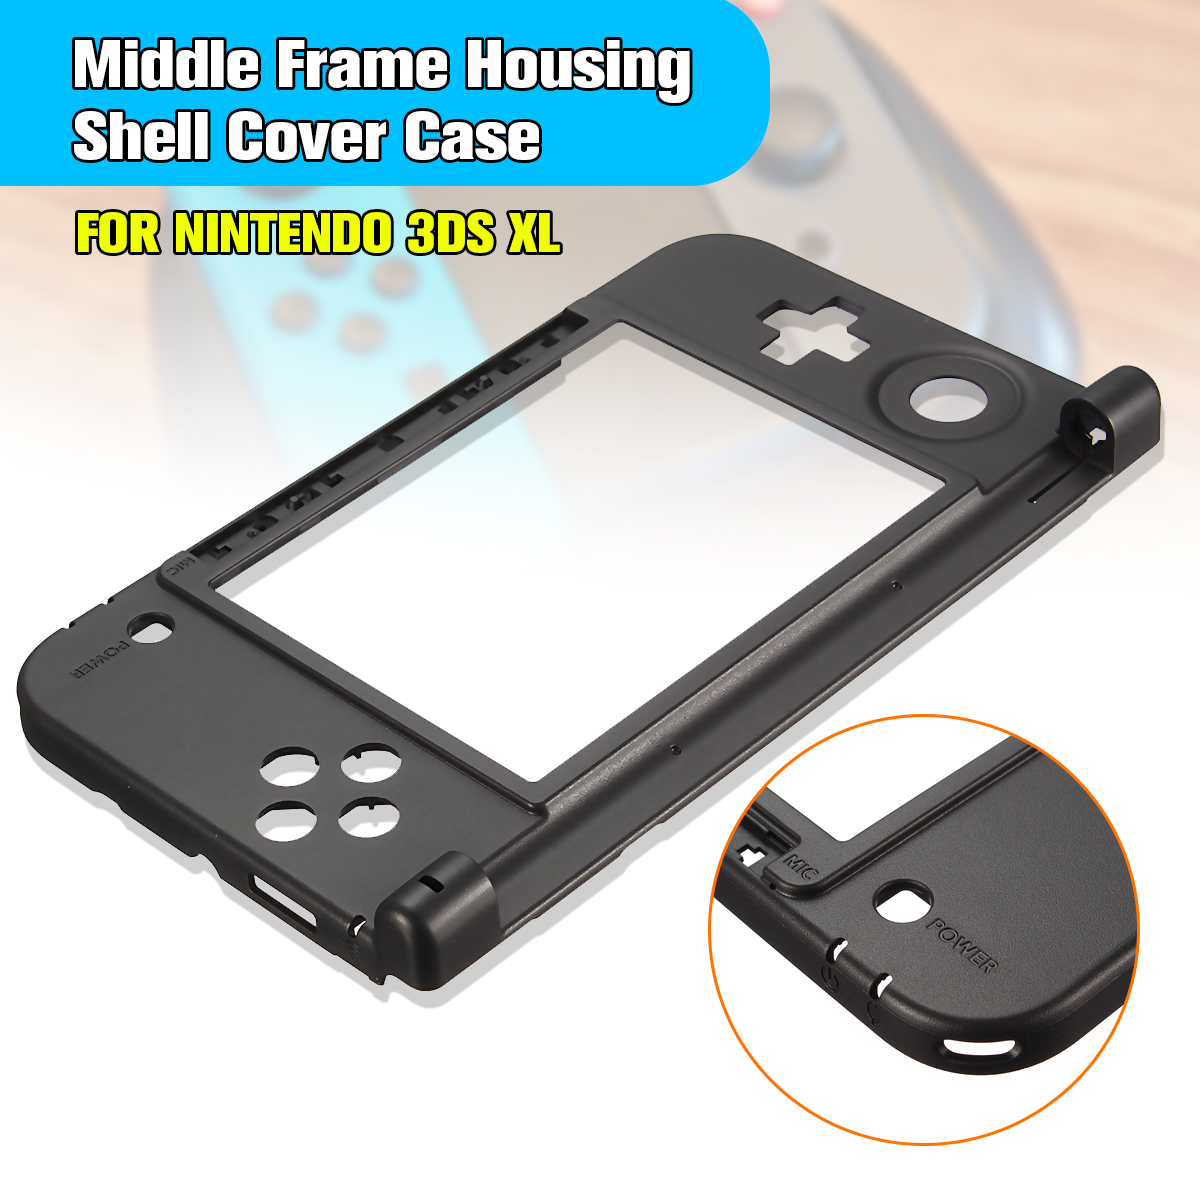 Housing Shell Cover Case Original Bund Middle Frame Replacement Kit Konsol Cover til Nintendo til 3DS XL / LL Game Console